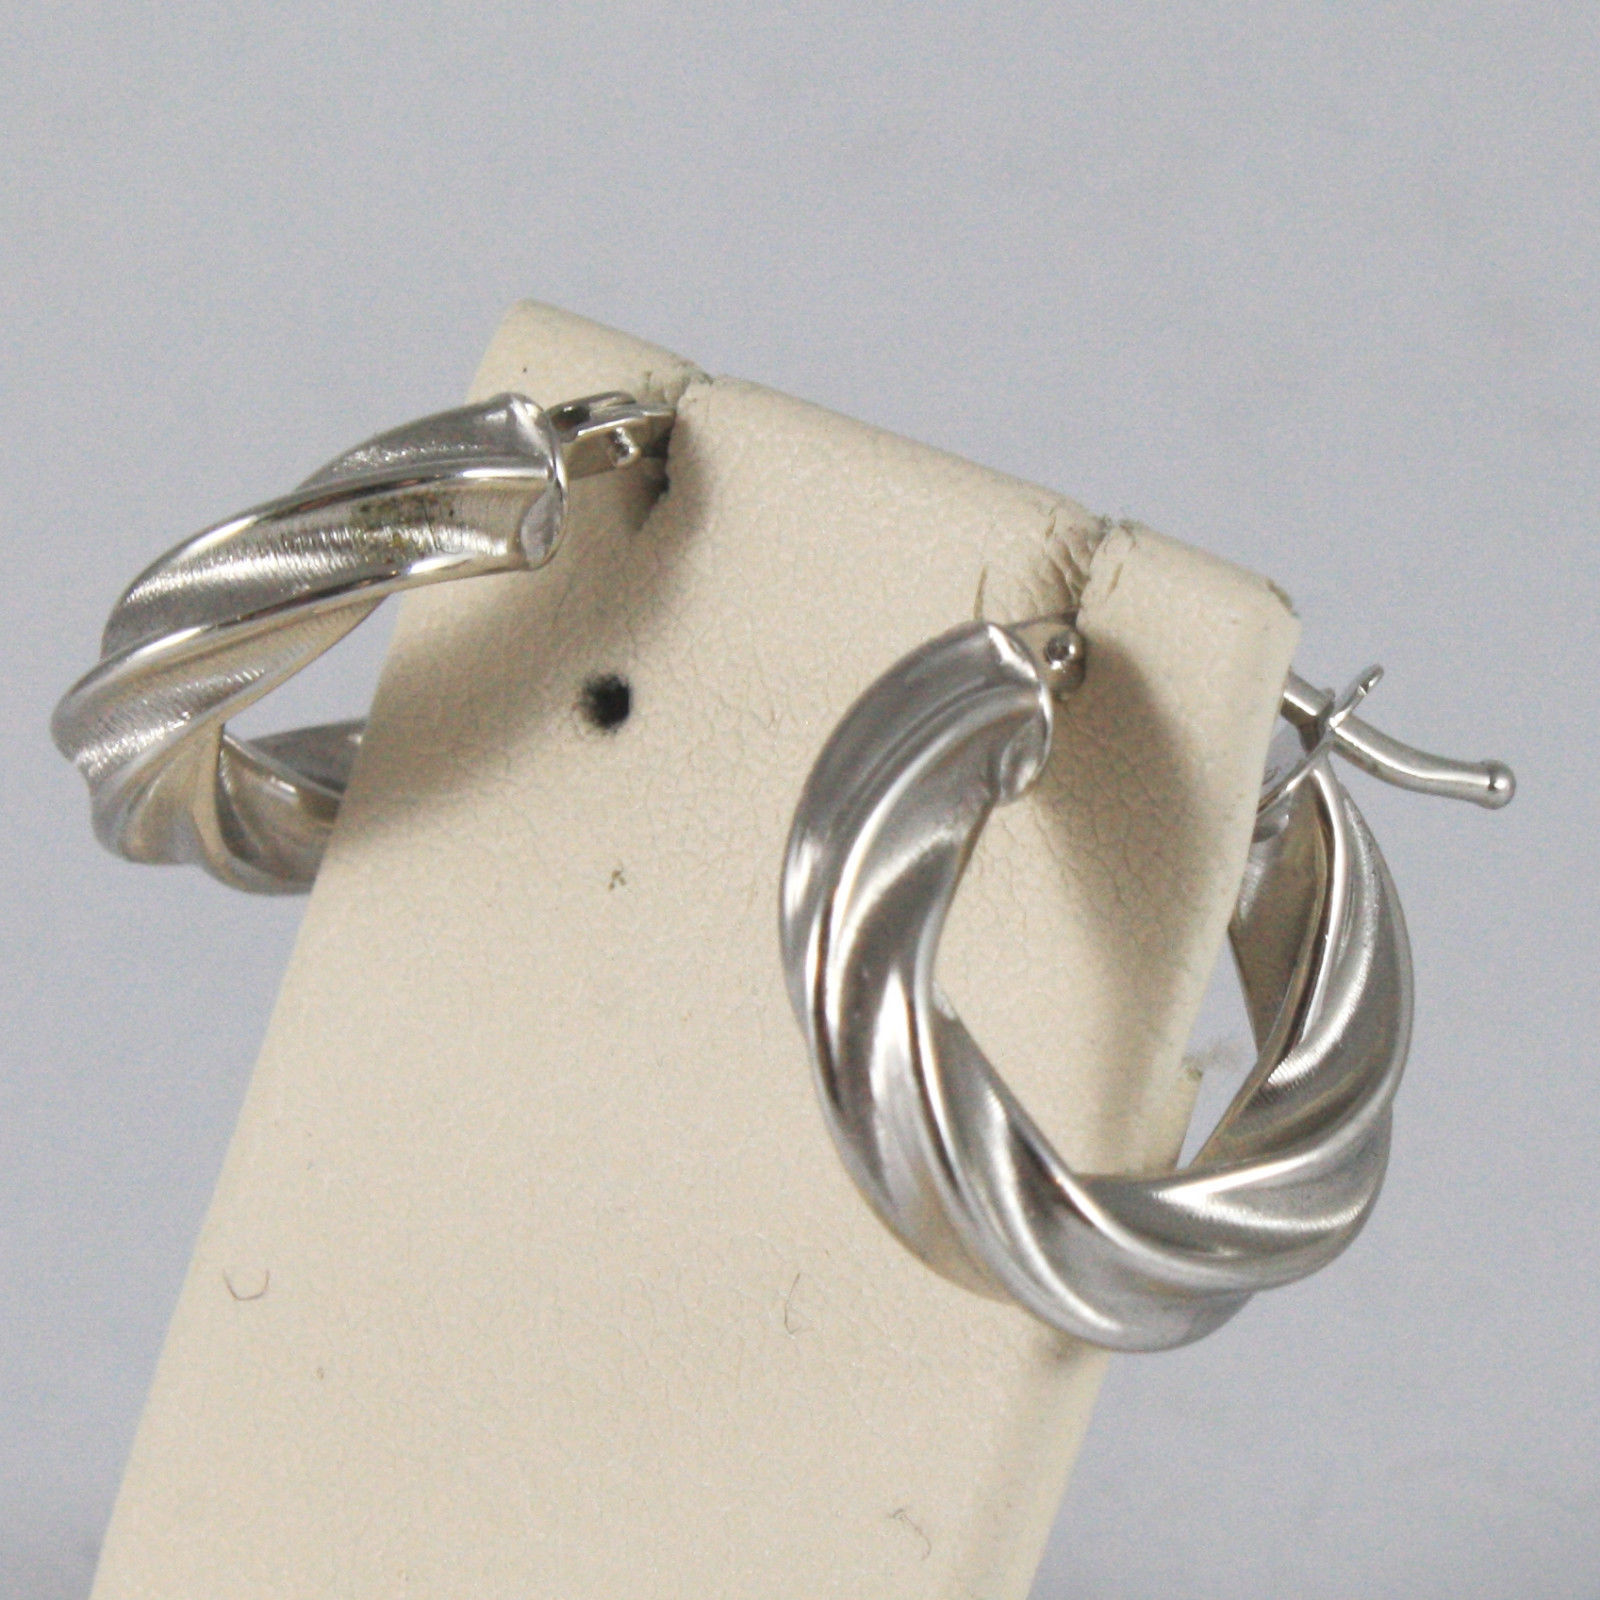 SOLID 18KT. WHITE GOLD CIRCLE EARRINGS, WITH BRAID WORKED, MADE IN ITALY.